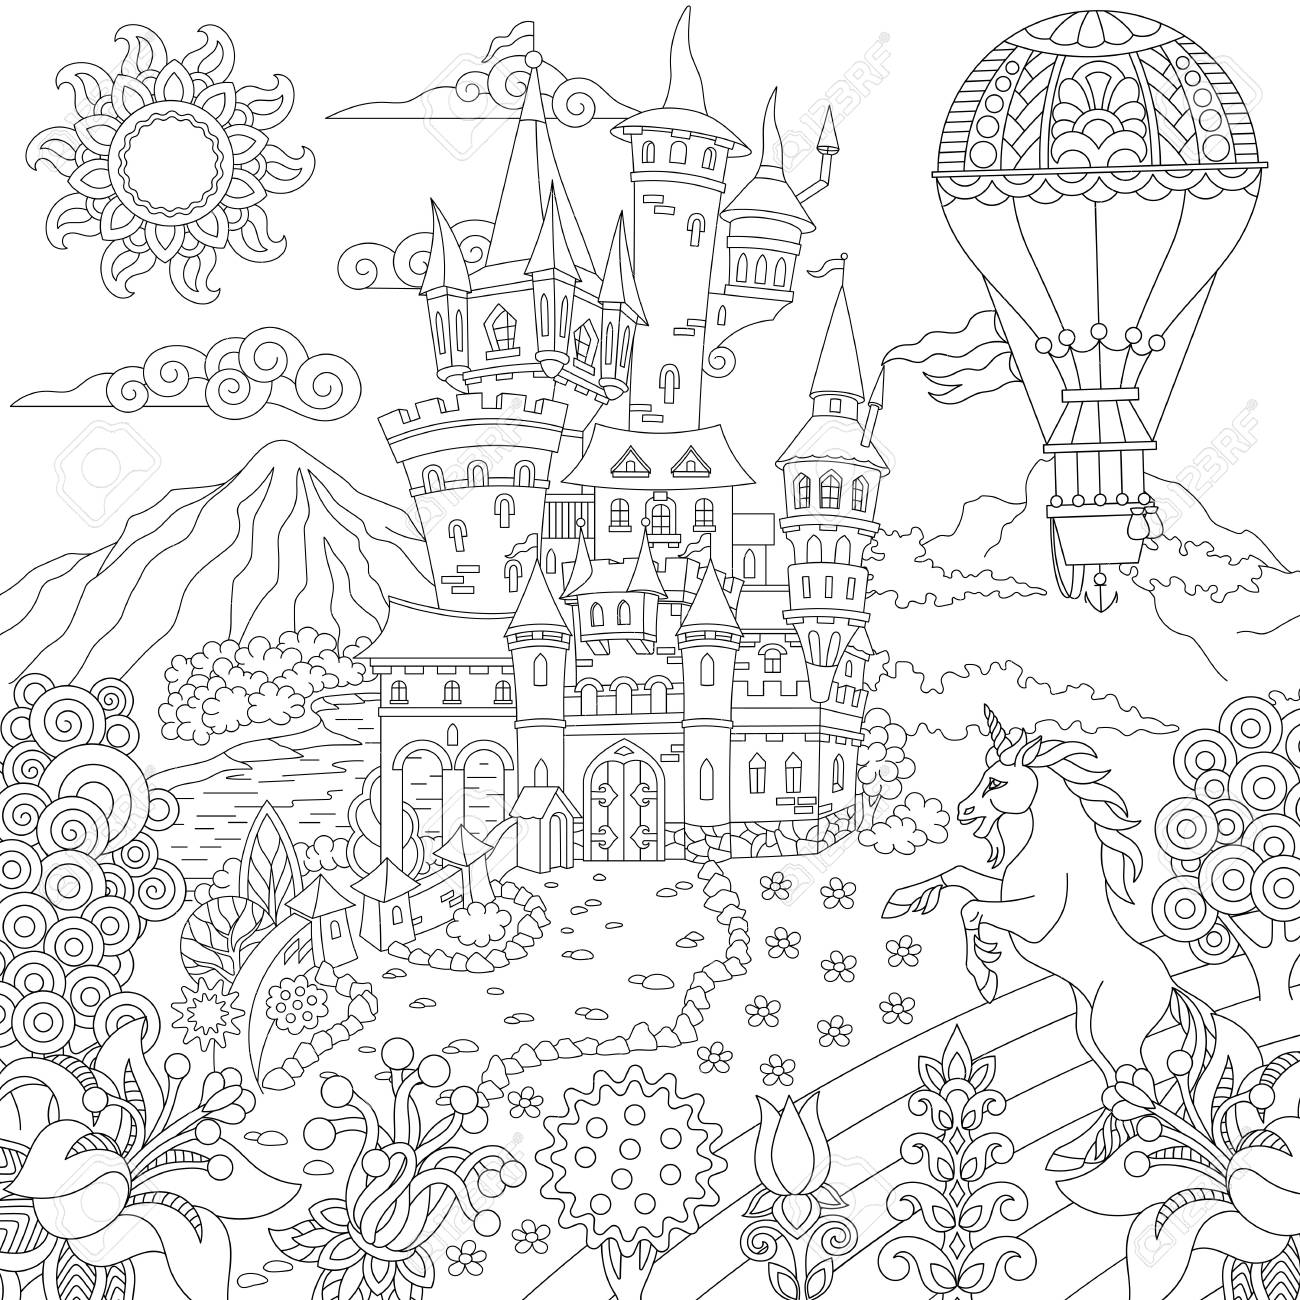 Simple Hot Air Balloon coloring page | Free Printable Coloring Pages | 1300x1300